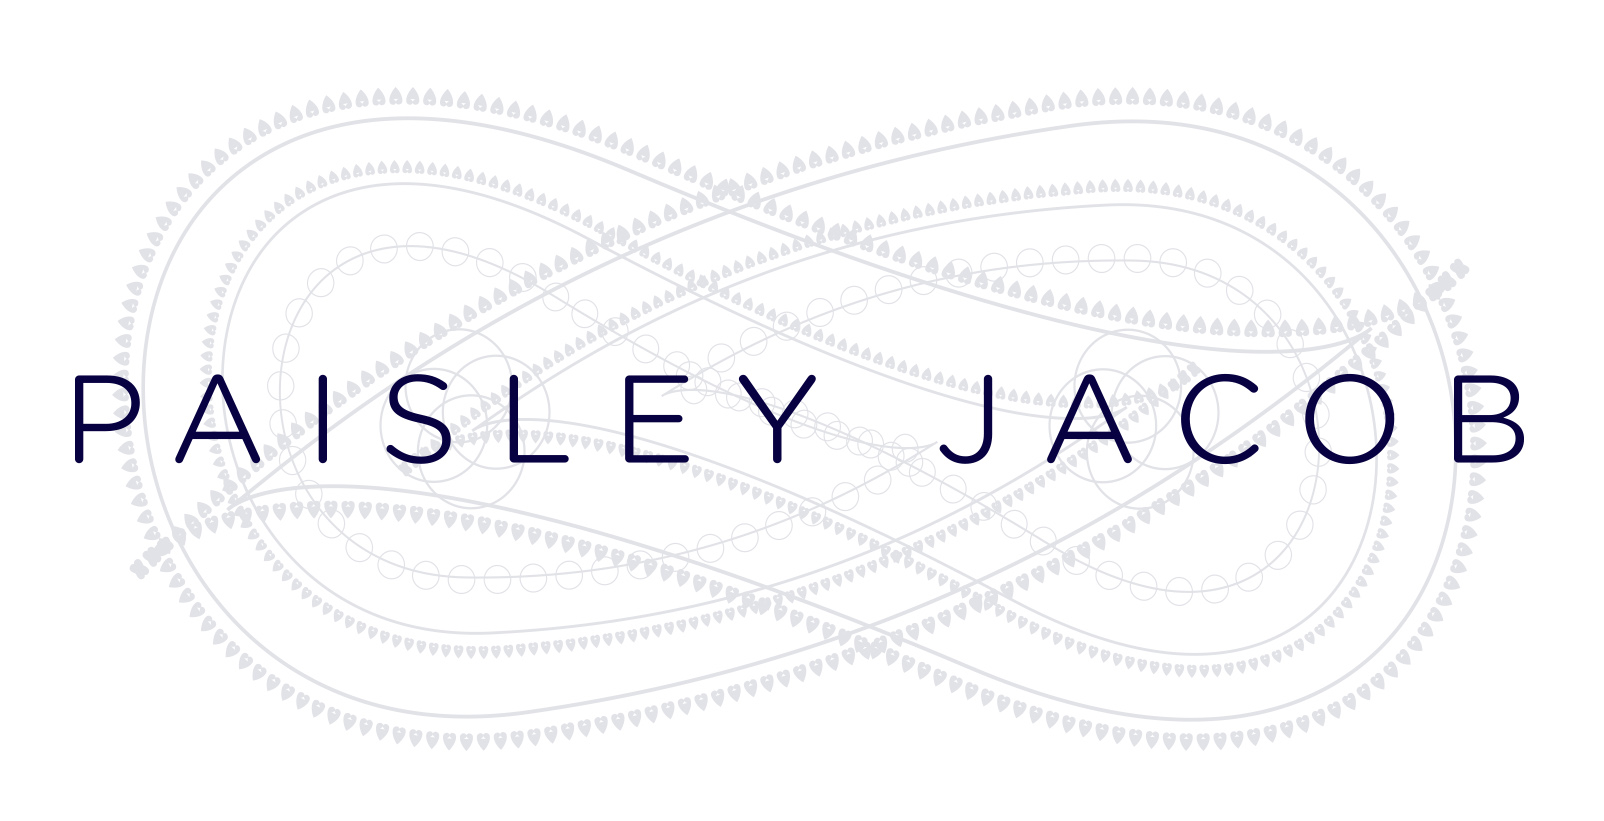 Paisley Jacob